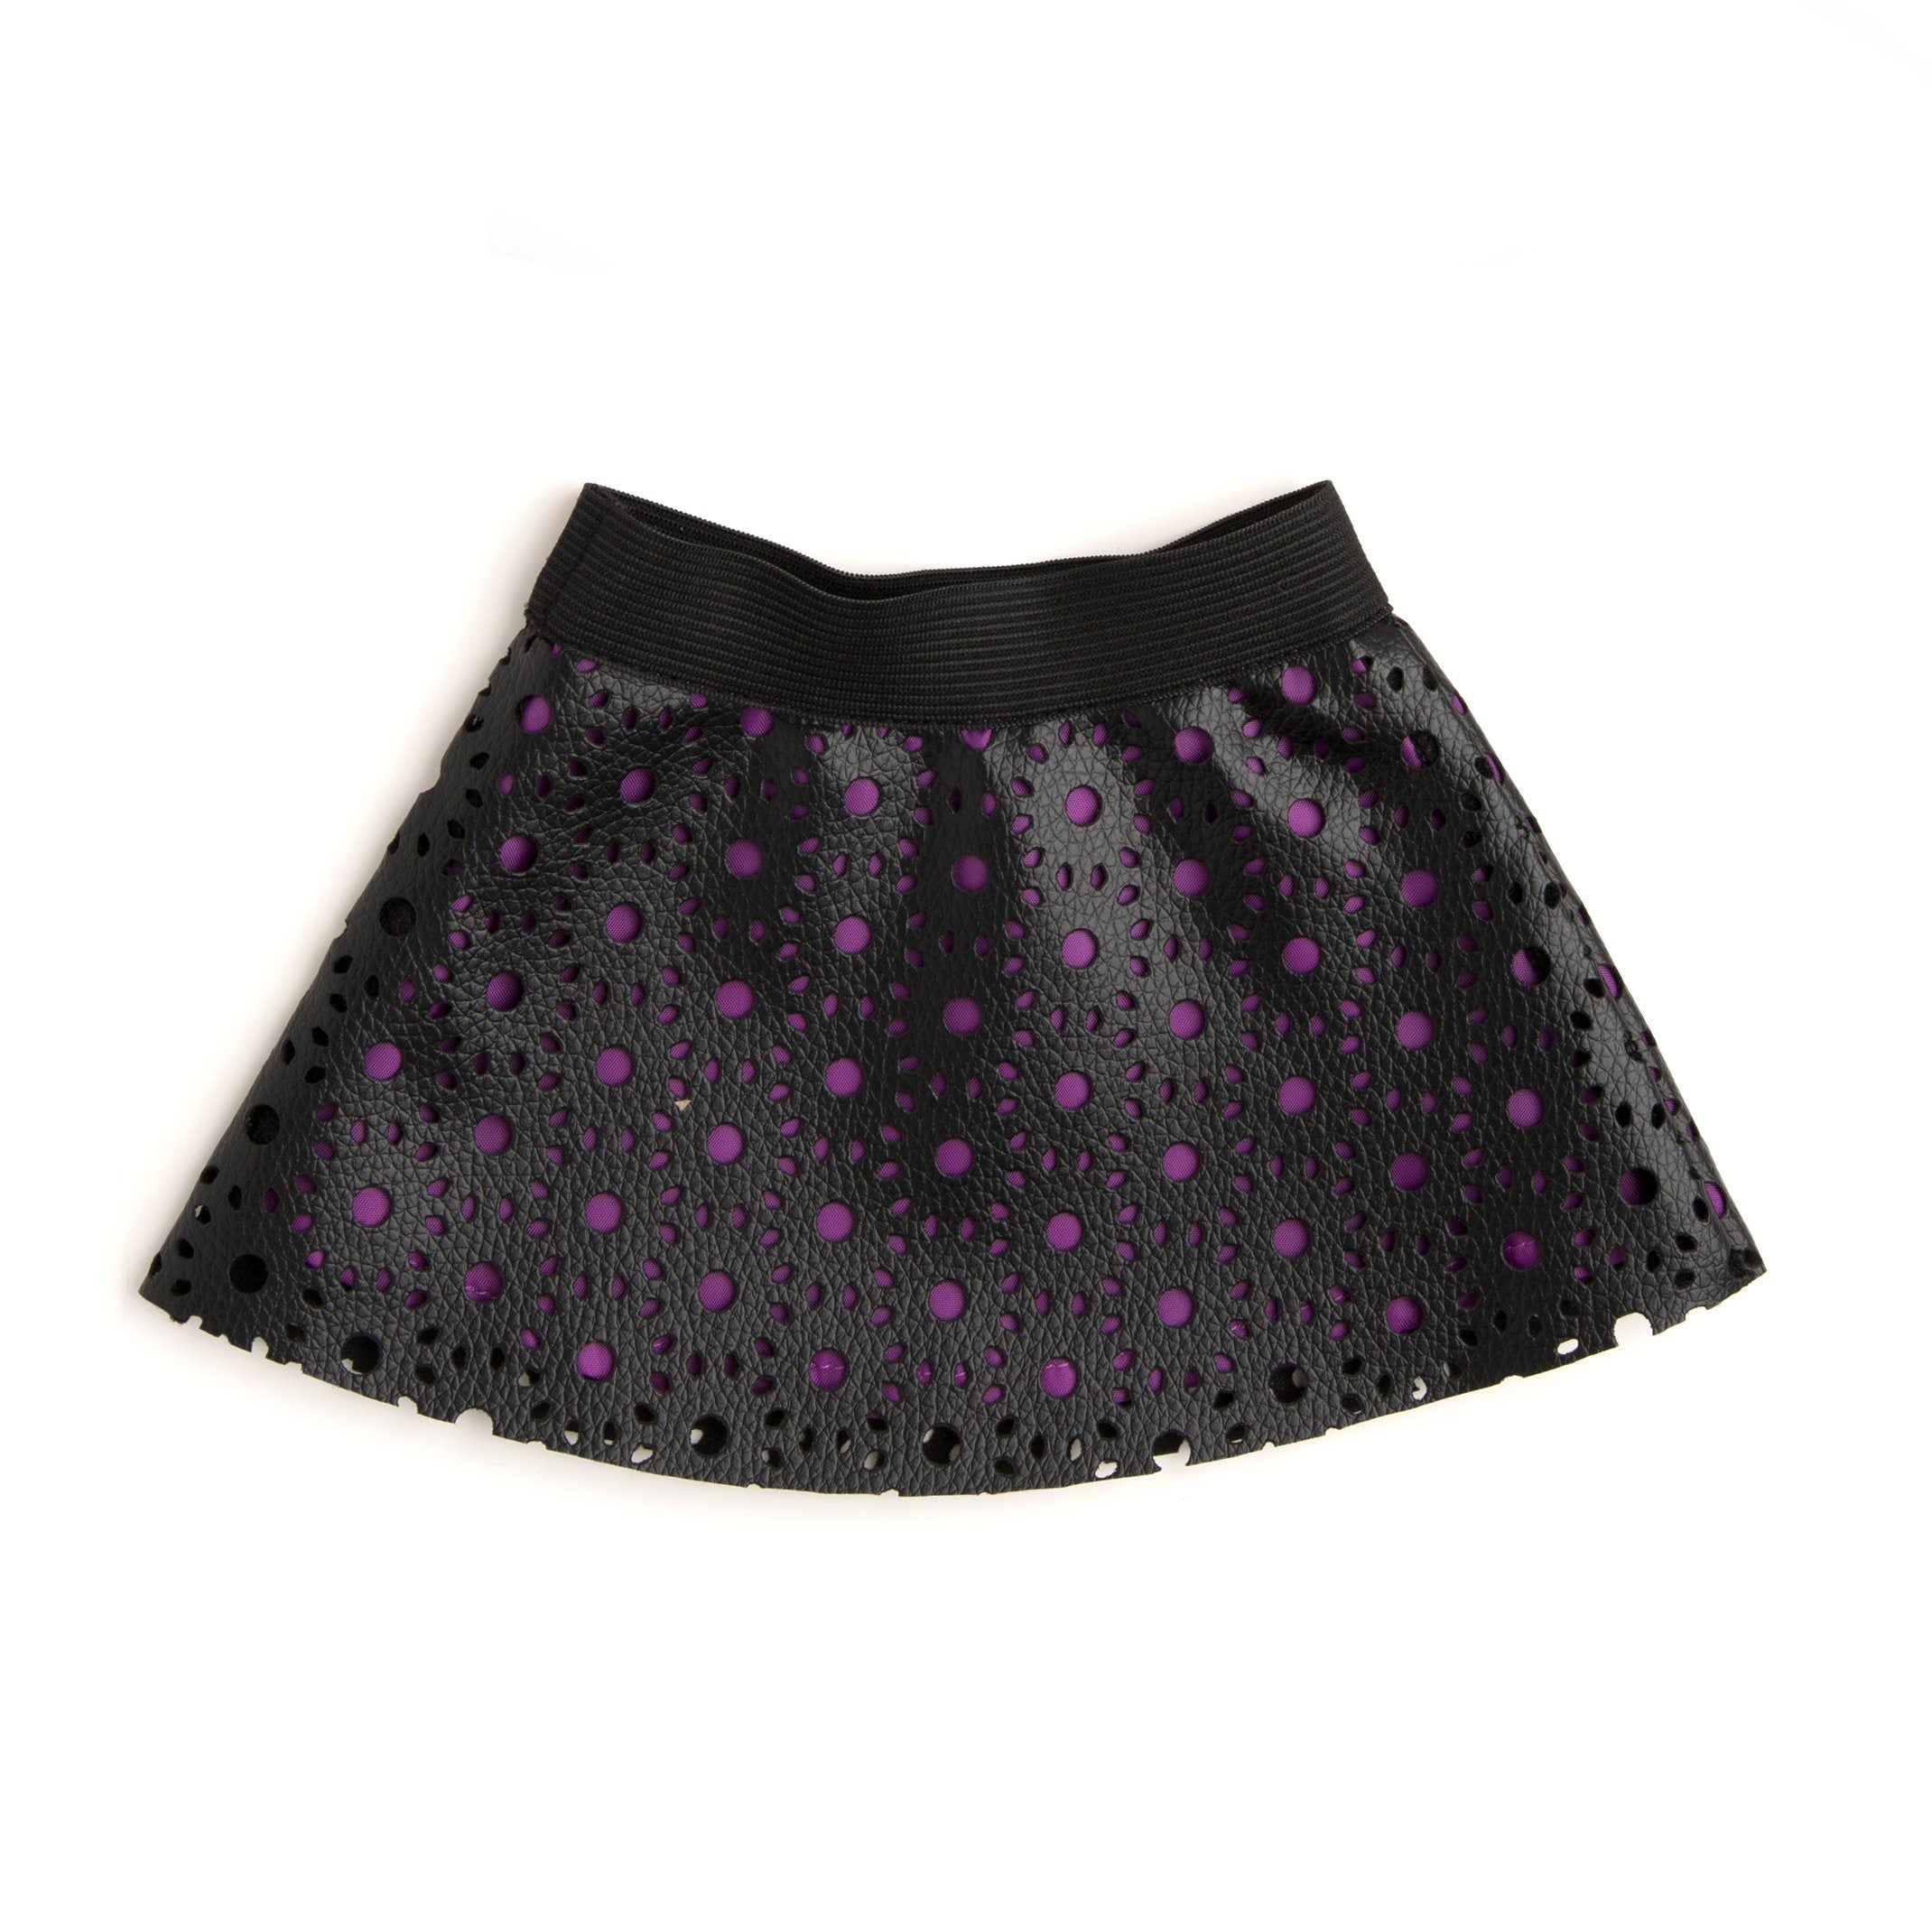 Fashionable leather-like skirt with cutouts for 18 inch doll